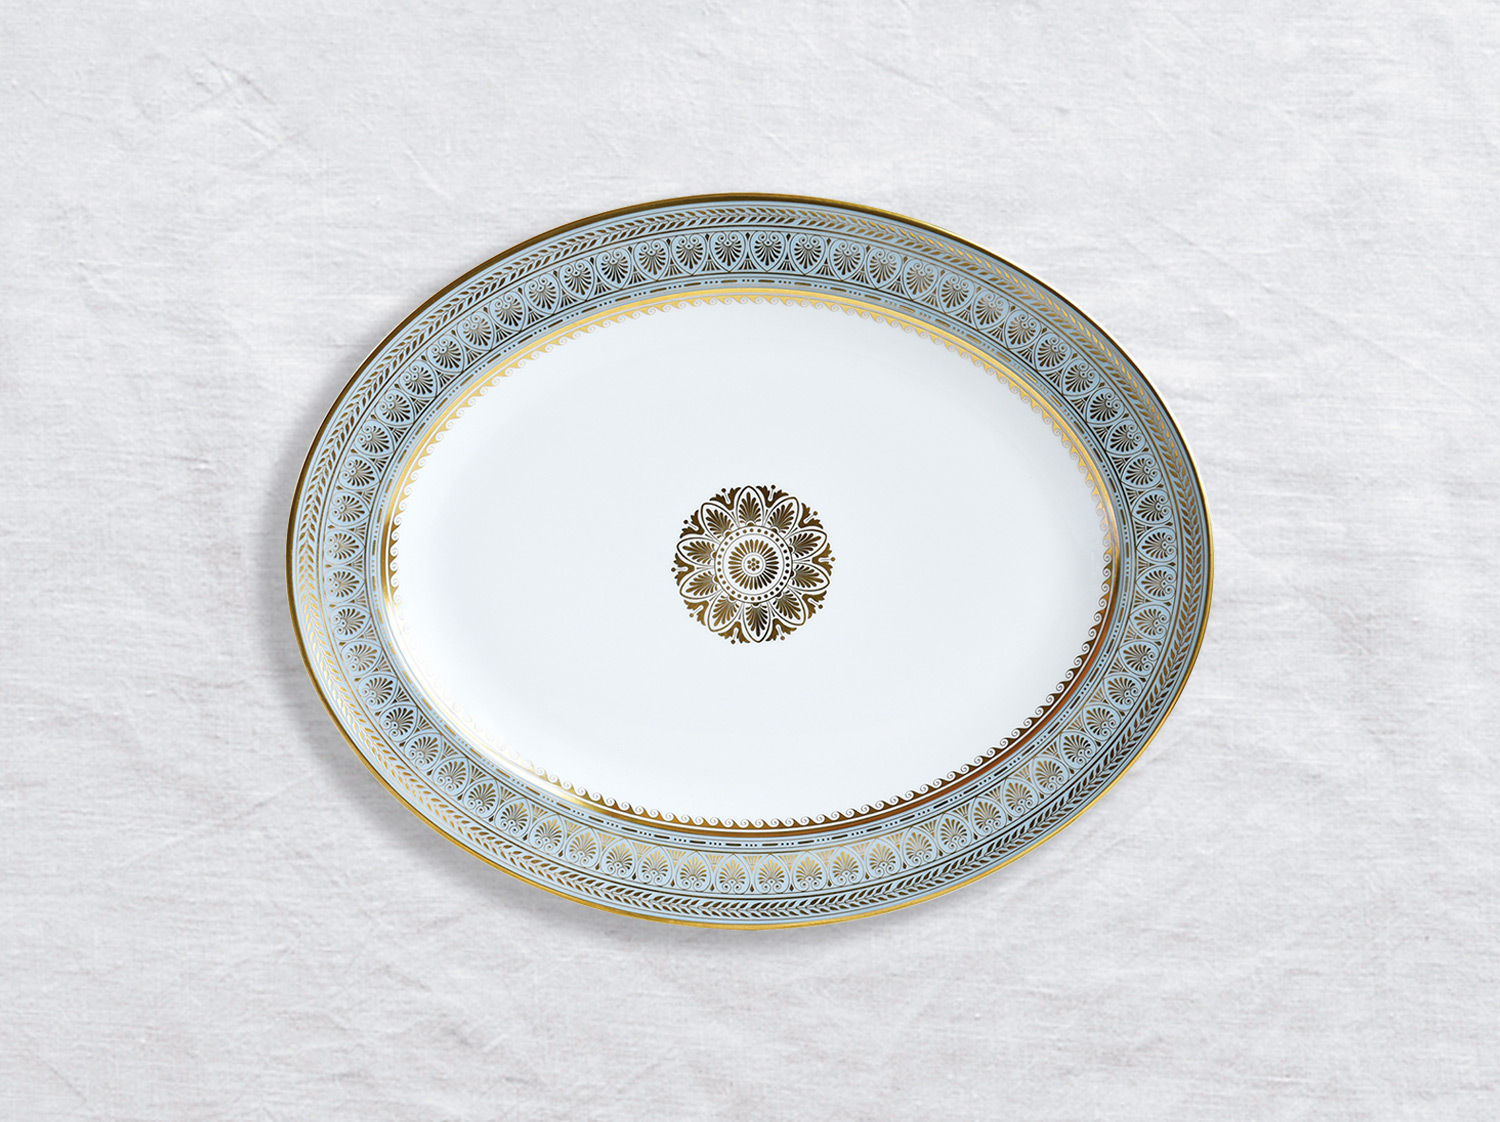 Plat ovale 33 cm en porcelaine de la collection Elysee Bernardaud